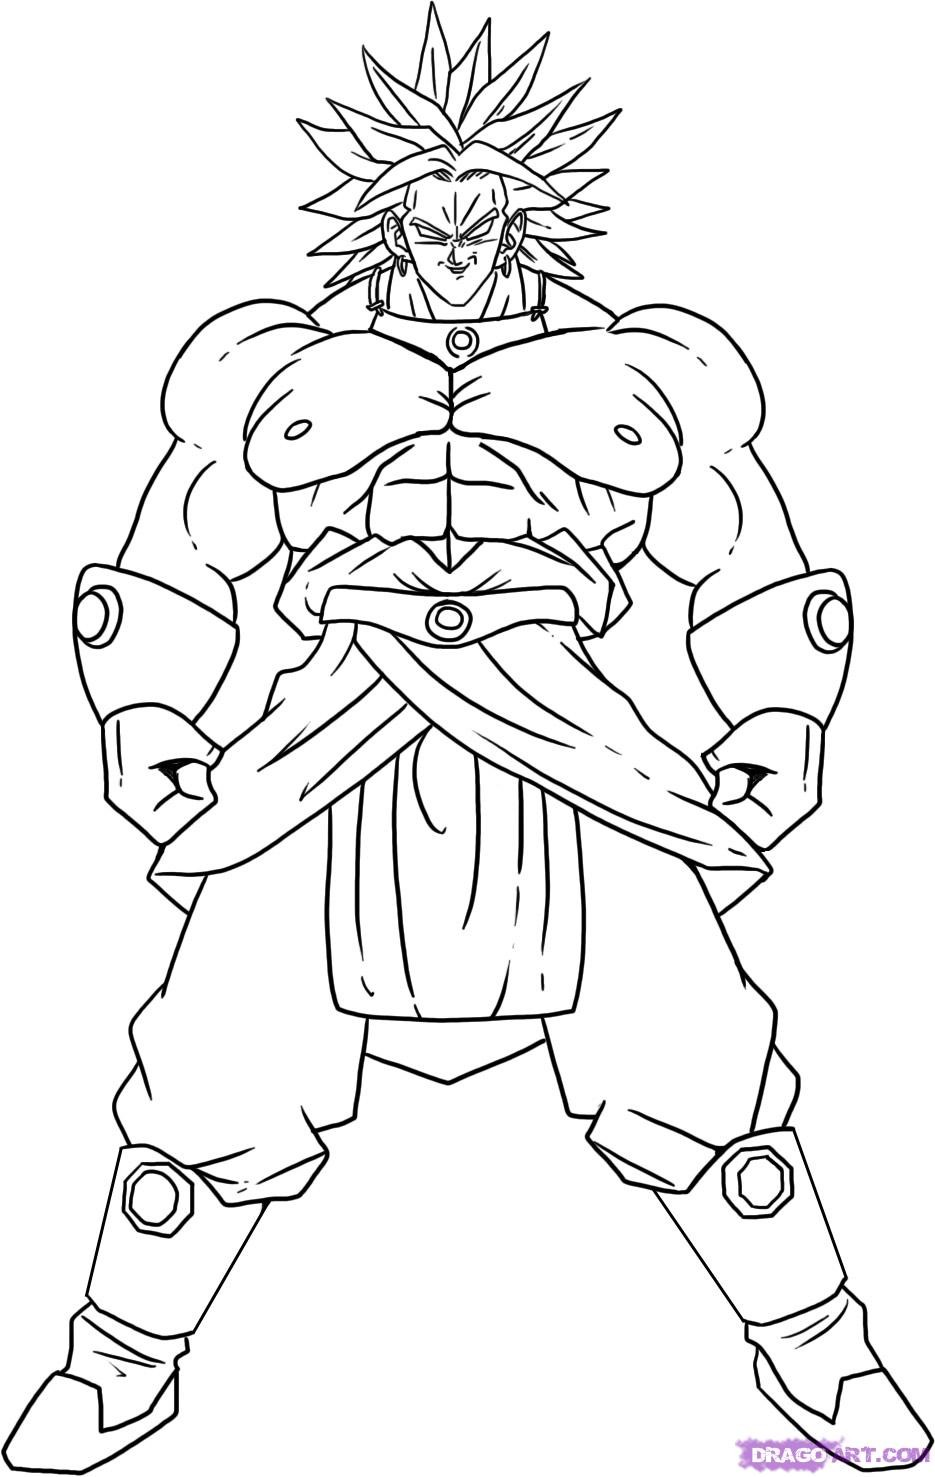 Free Printable Dragon Ball Z Coloring